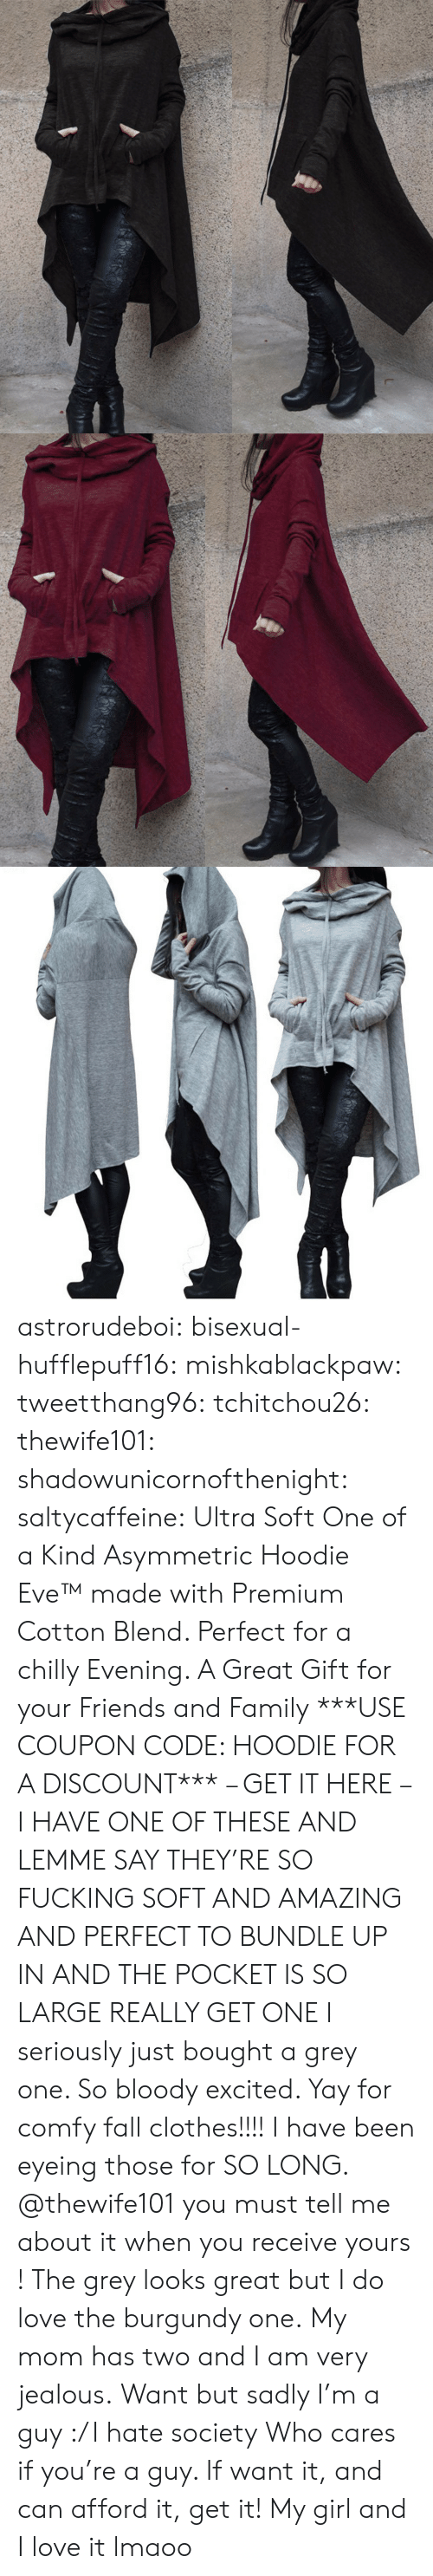 comfy: astrorudeboi: bisexual-hufflepuff16:  mishkablackpaw:   tweetthang96:  tchitchou26:  thewife101:  shadowunicornofthenight:  saltycaffeine:  Ultra Soft One of a Kind Asymmetric Hoodie Eve™ made with Premium Cotton Blend. Perfect for a chilly Evening. A Great Gift for your Friends and Family ***USE COUPON CODE: HOODIE FOR A DISCOUNT*** – GET IT HERE –   I HAVE ONE OF THESE AND LEMME SAY THEY'RE SO FUCKING SOFT AND AMAZING AND PERFECT TO BUNDLE UP IN AND THE POCKET IS SO LARGE REALLY GET ONE   I seriously just bought a grey one. So bloody excited. Yay for comfy fall clothes!!!!   I have been eyeing those for SO LONG. @thewife101 you must tell me about it when you receive yours ! The grey looks great but I do love the burgundy one.   My mom has two and I am very jealous.   Want but sadly I'm a guy :/ I hate society   Who cares if you're a guy. If want it, and can afford it, get it!   My girl and I love it lmaoo